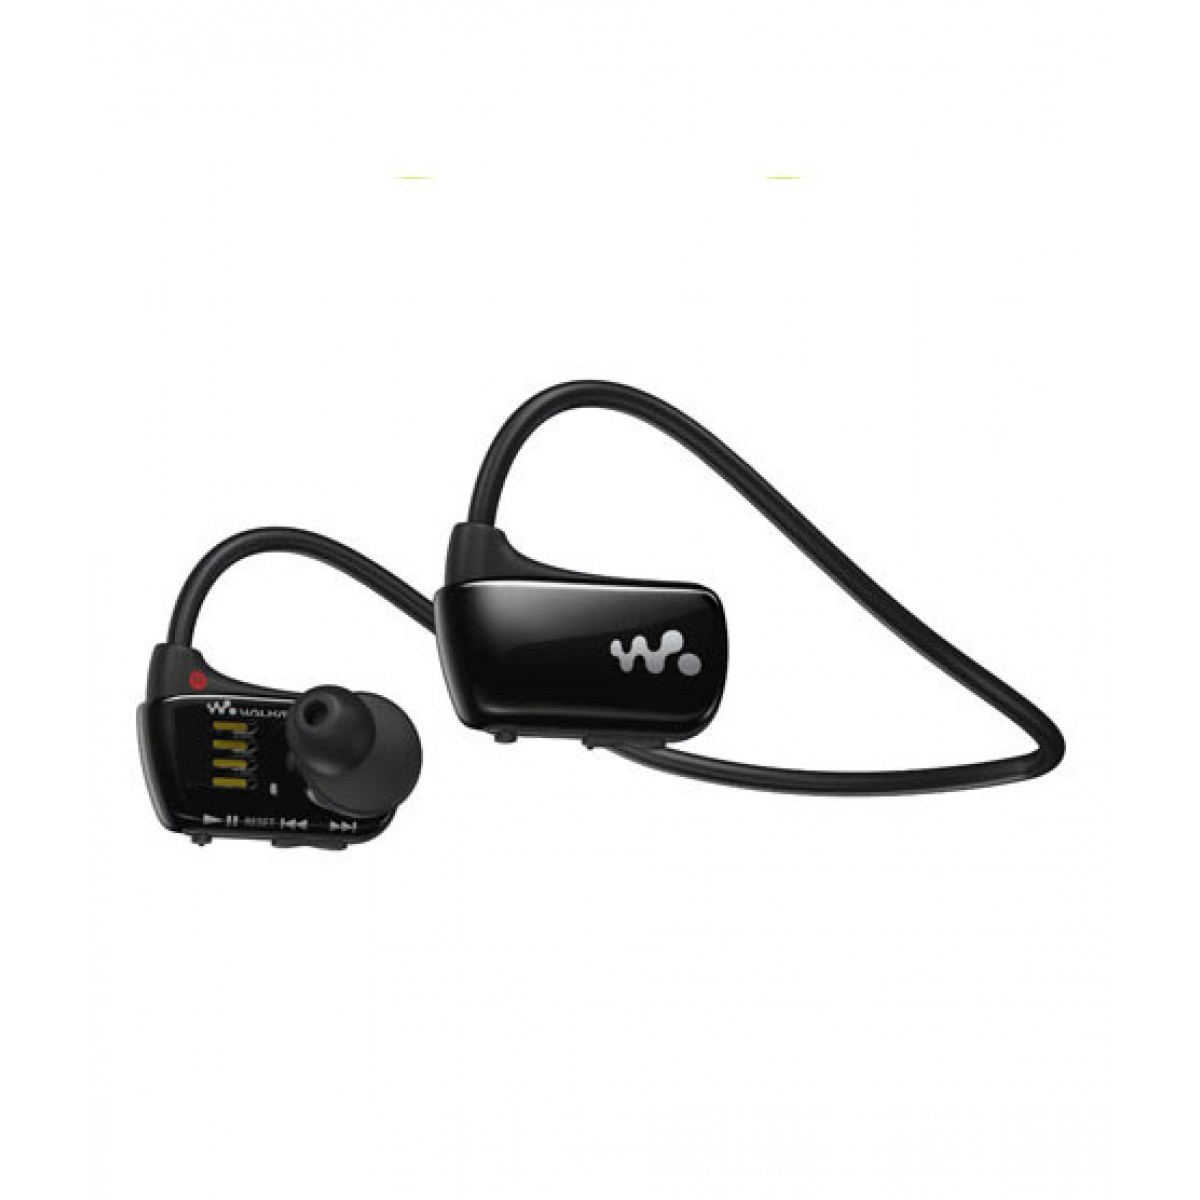 Sony Waterproof Bluetooth Sport MP3 Player Walkman Black (NWZ-W273S)